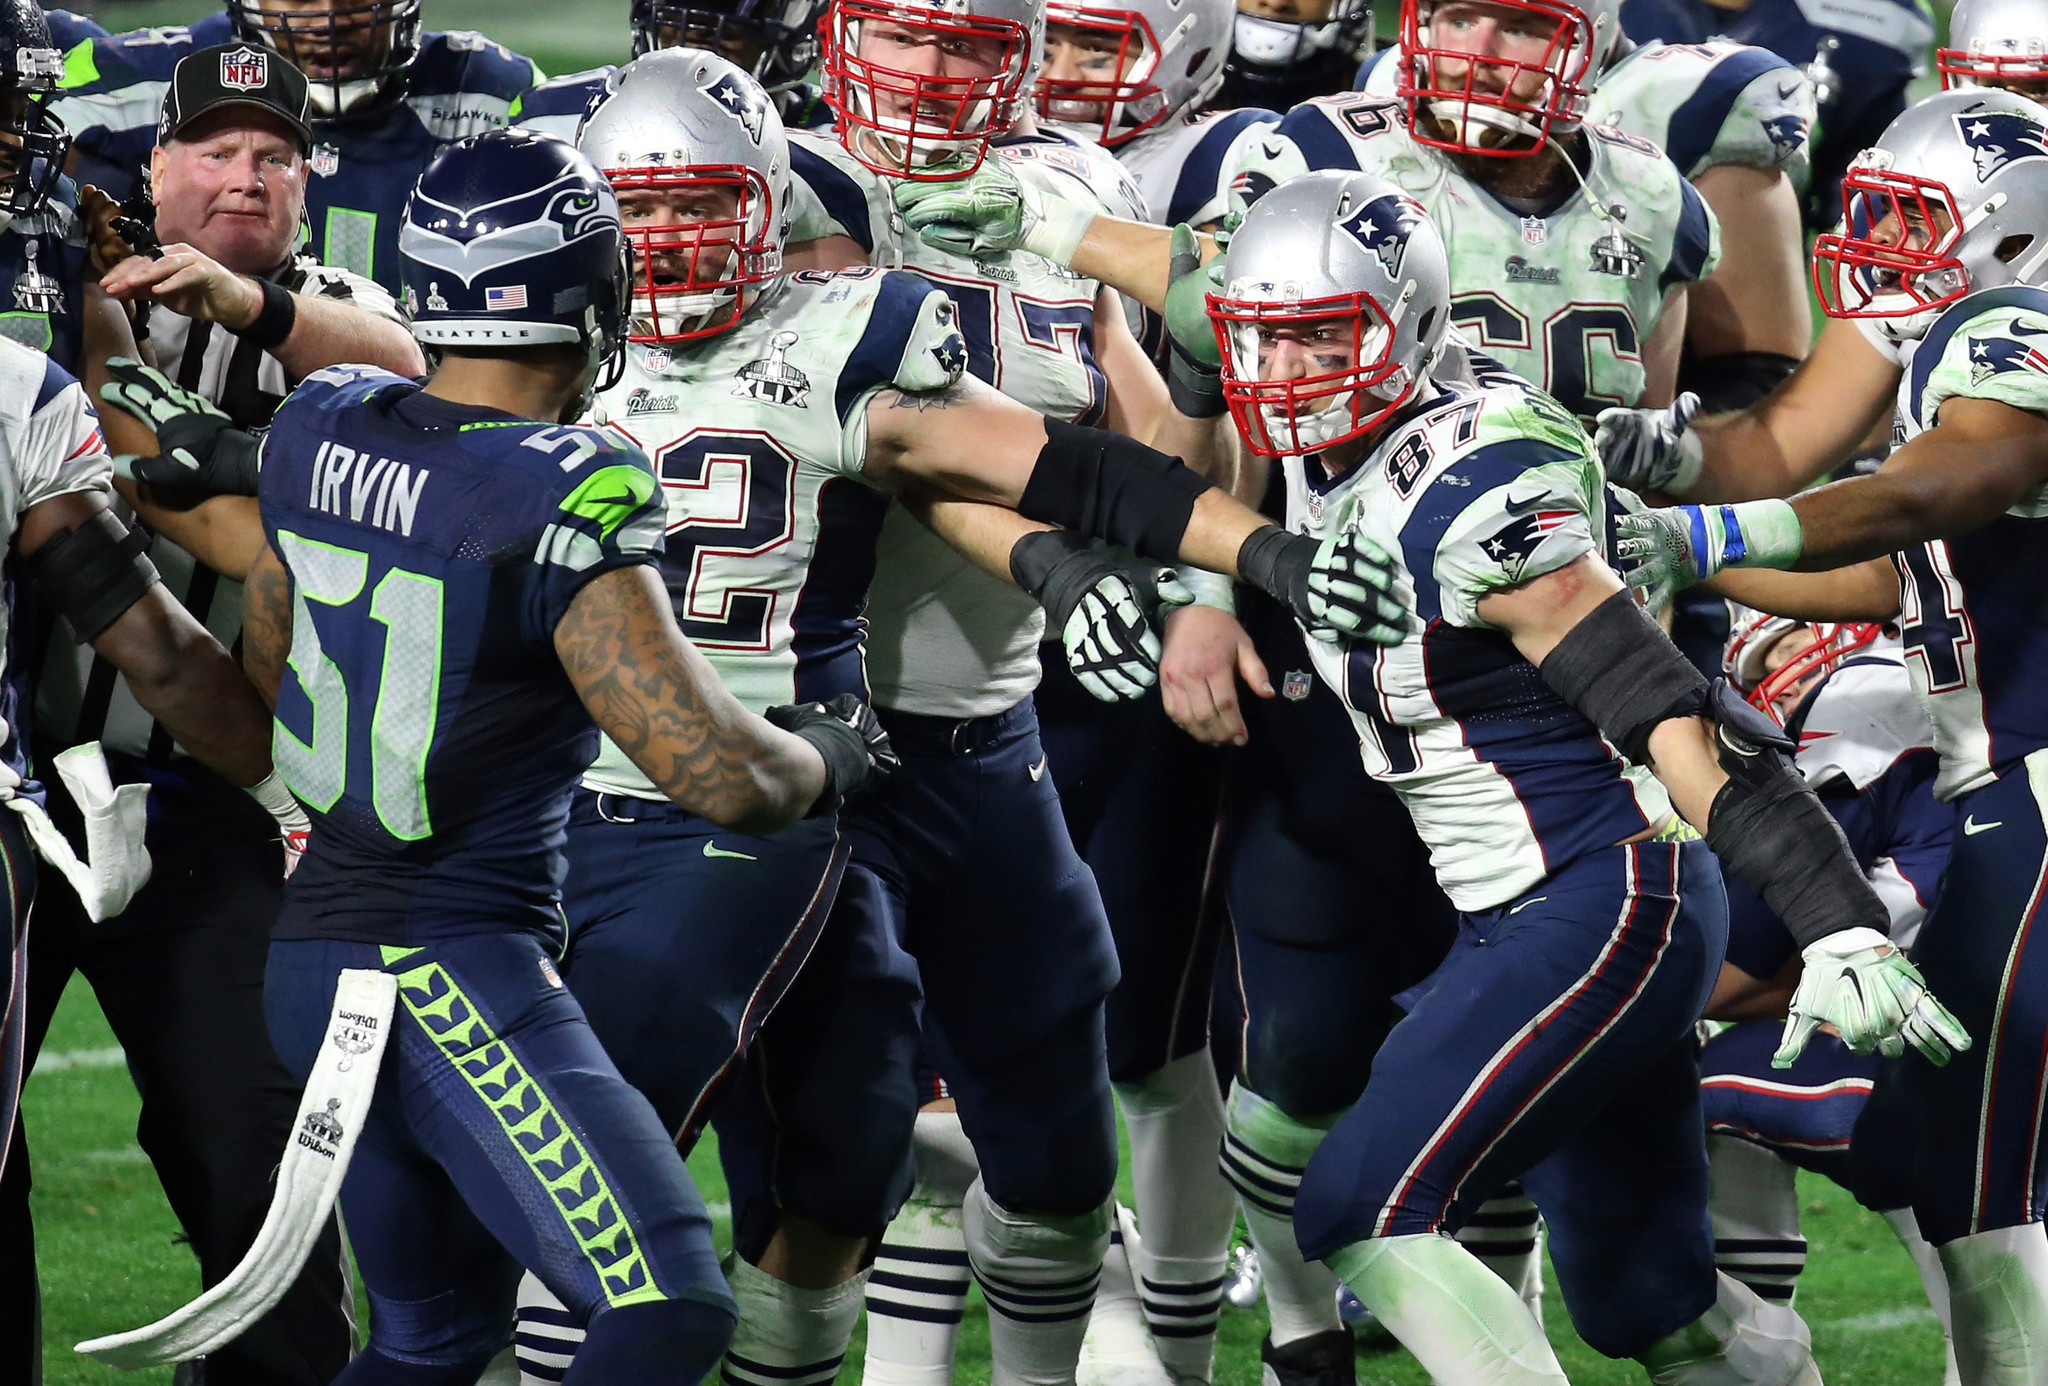 Super Bowl notes Seahawks Bruce Irvin ejected at end of game